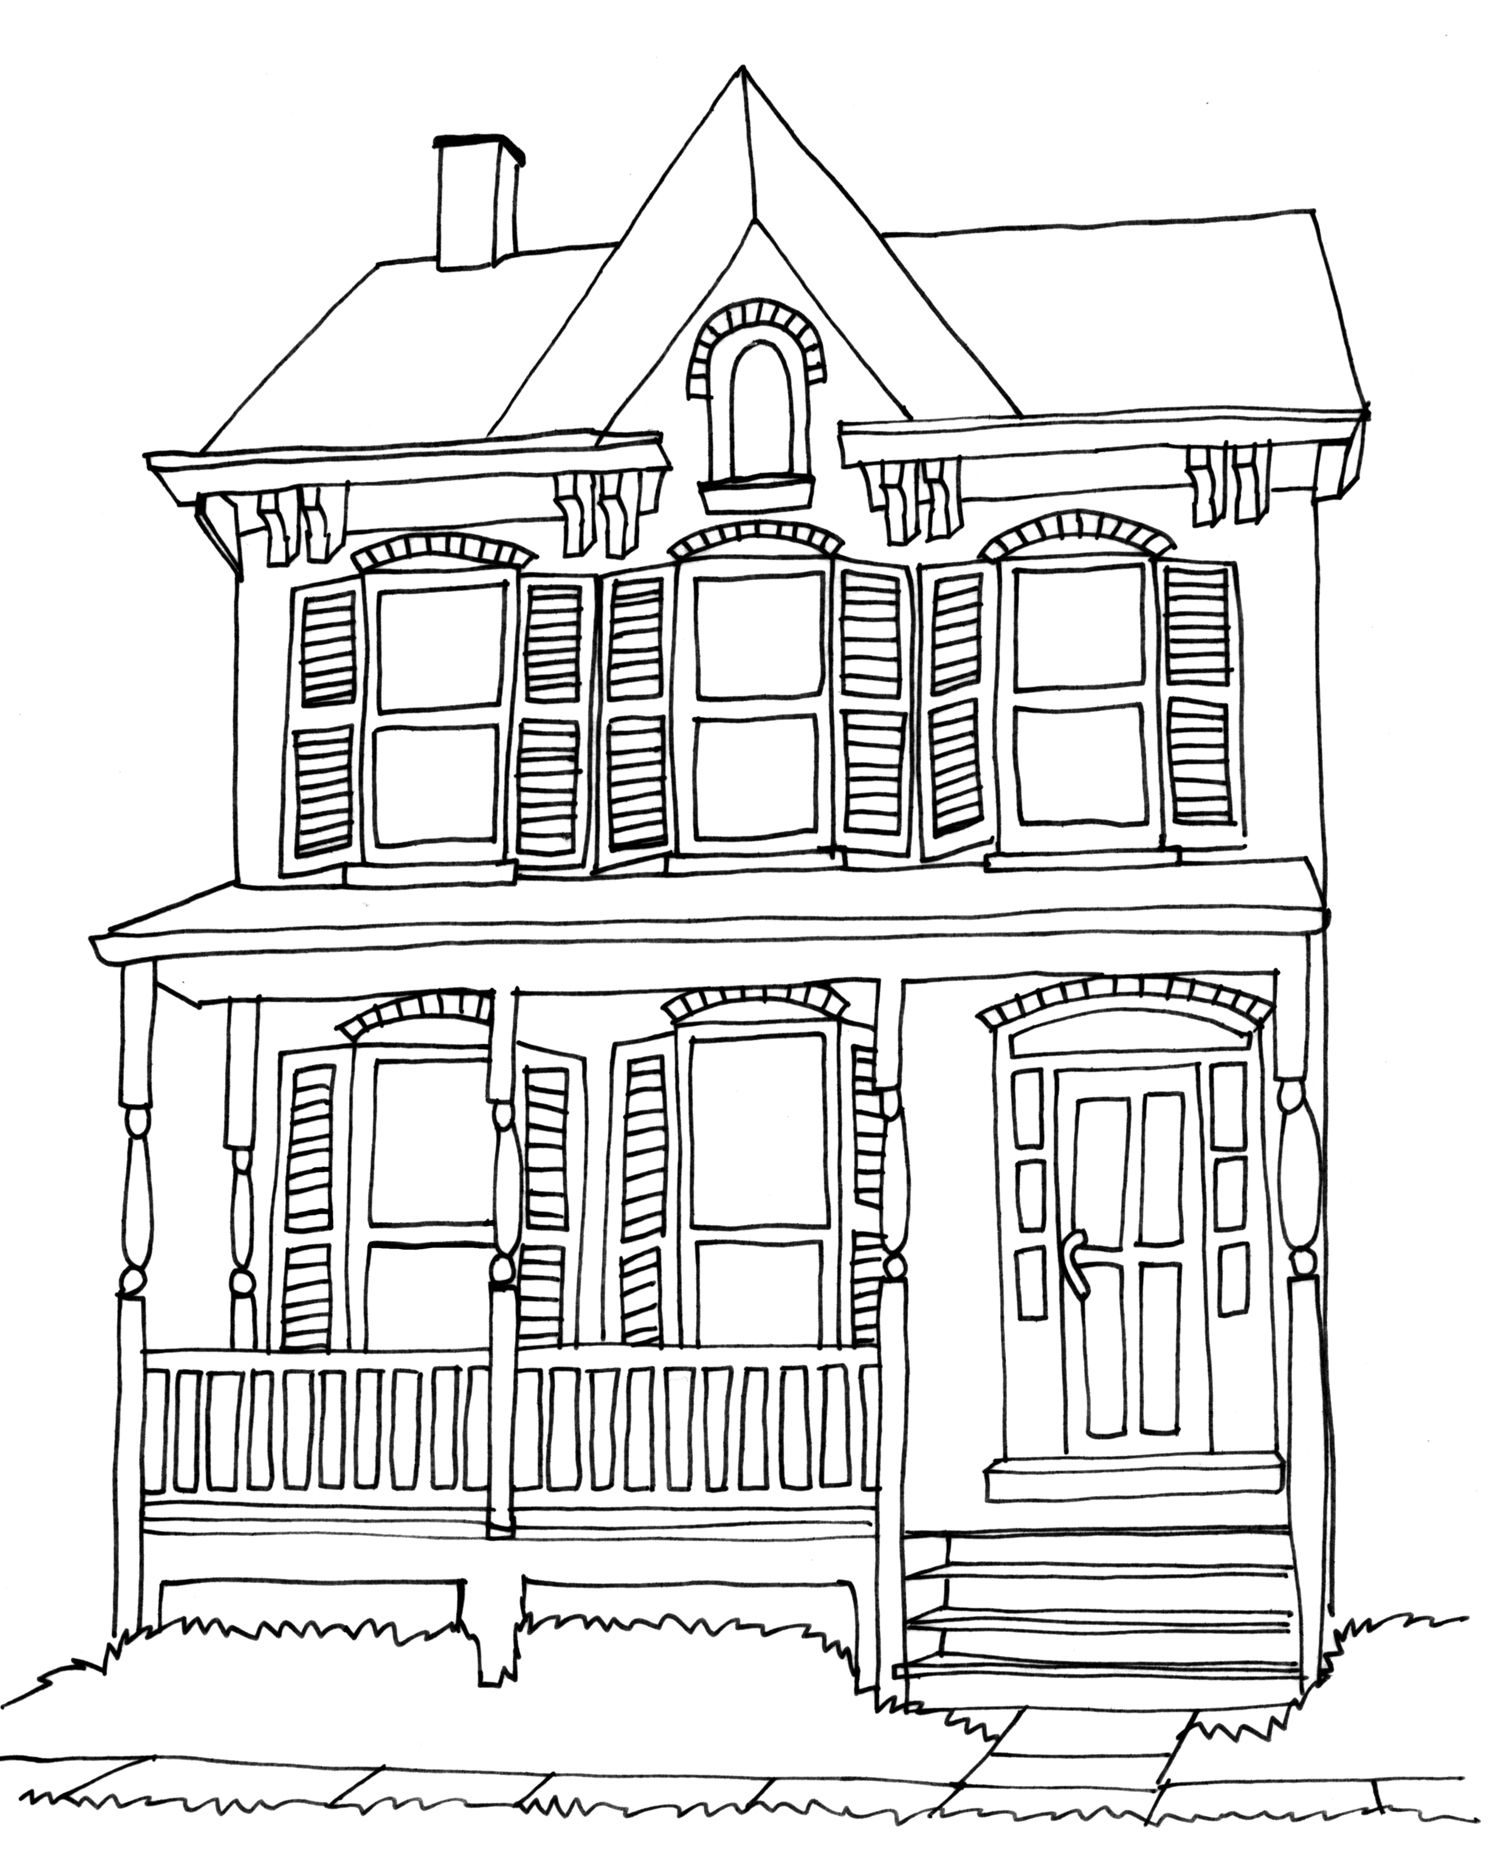 Https Www Bing Com Images Search Q House Drawingvictorian